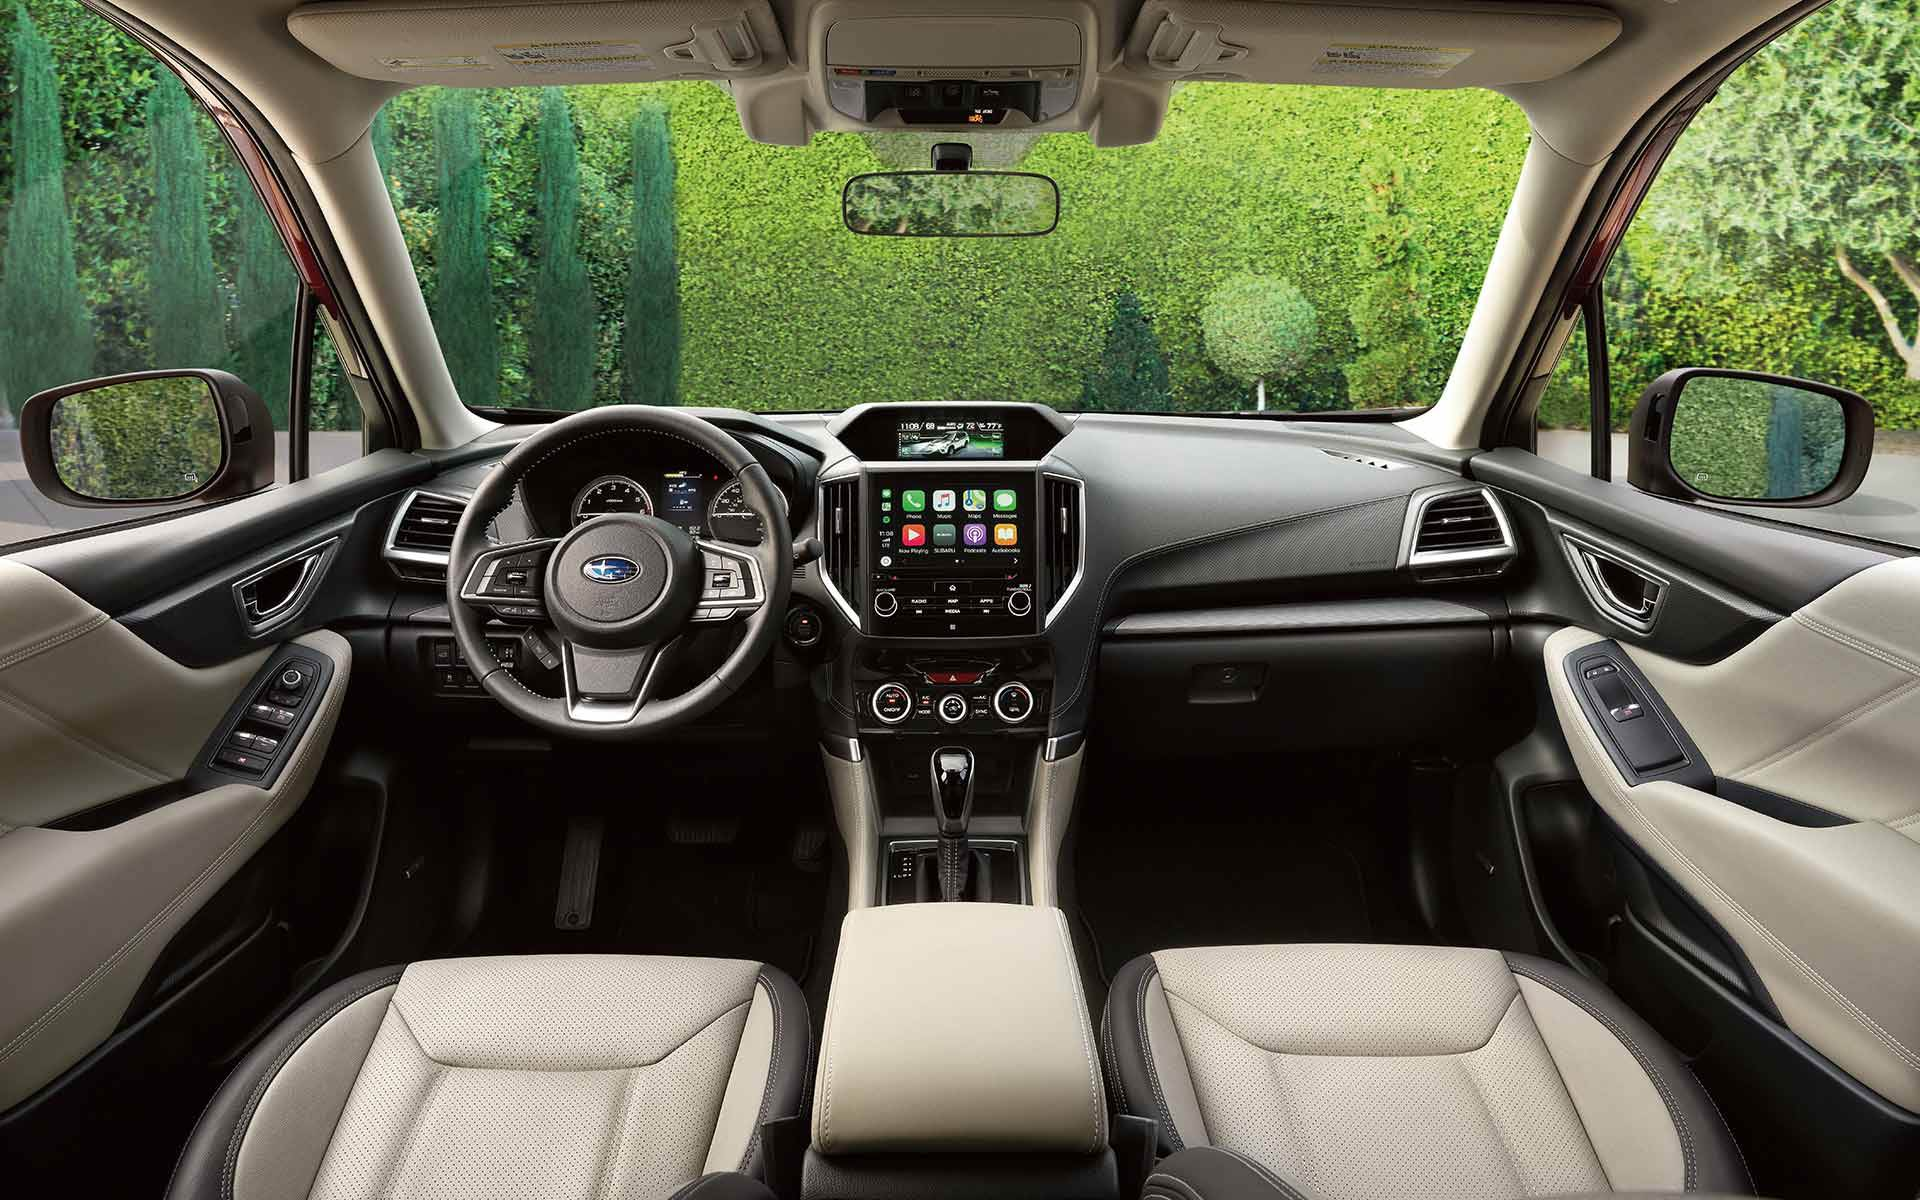 2019 Subaru Forester Features Subaru